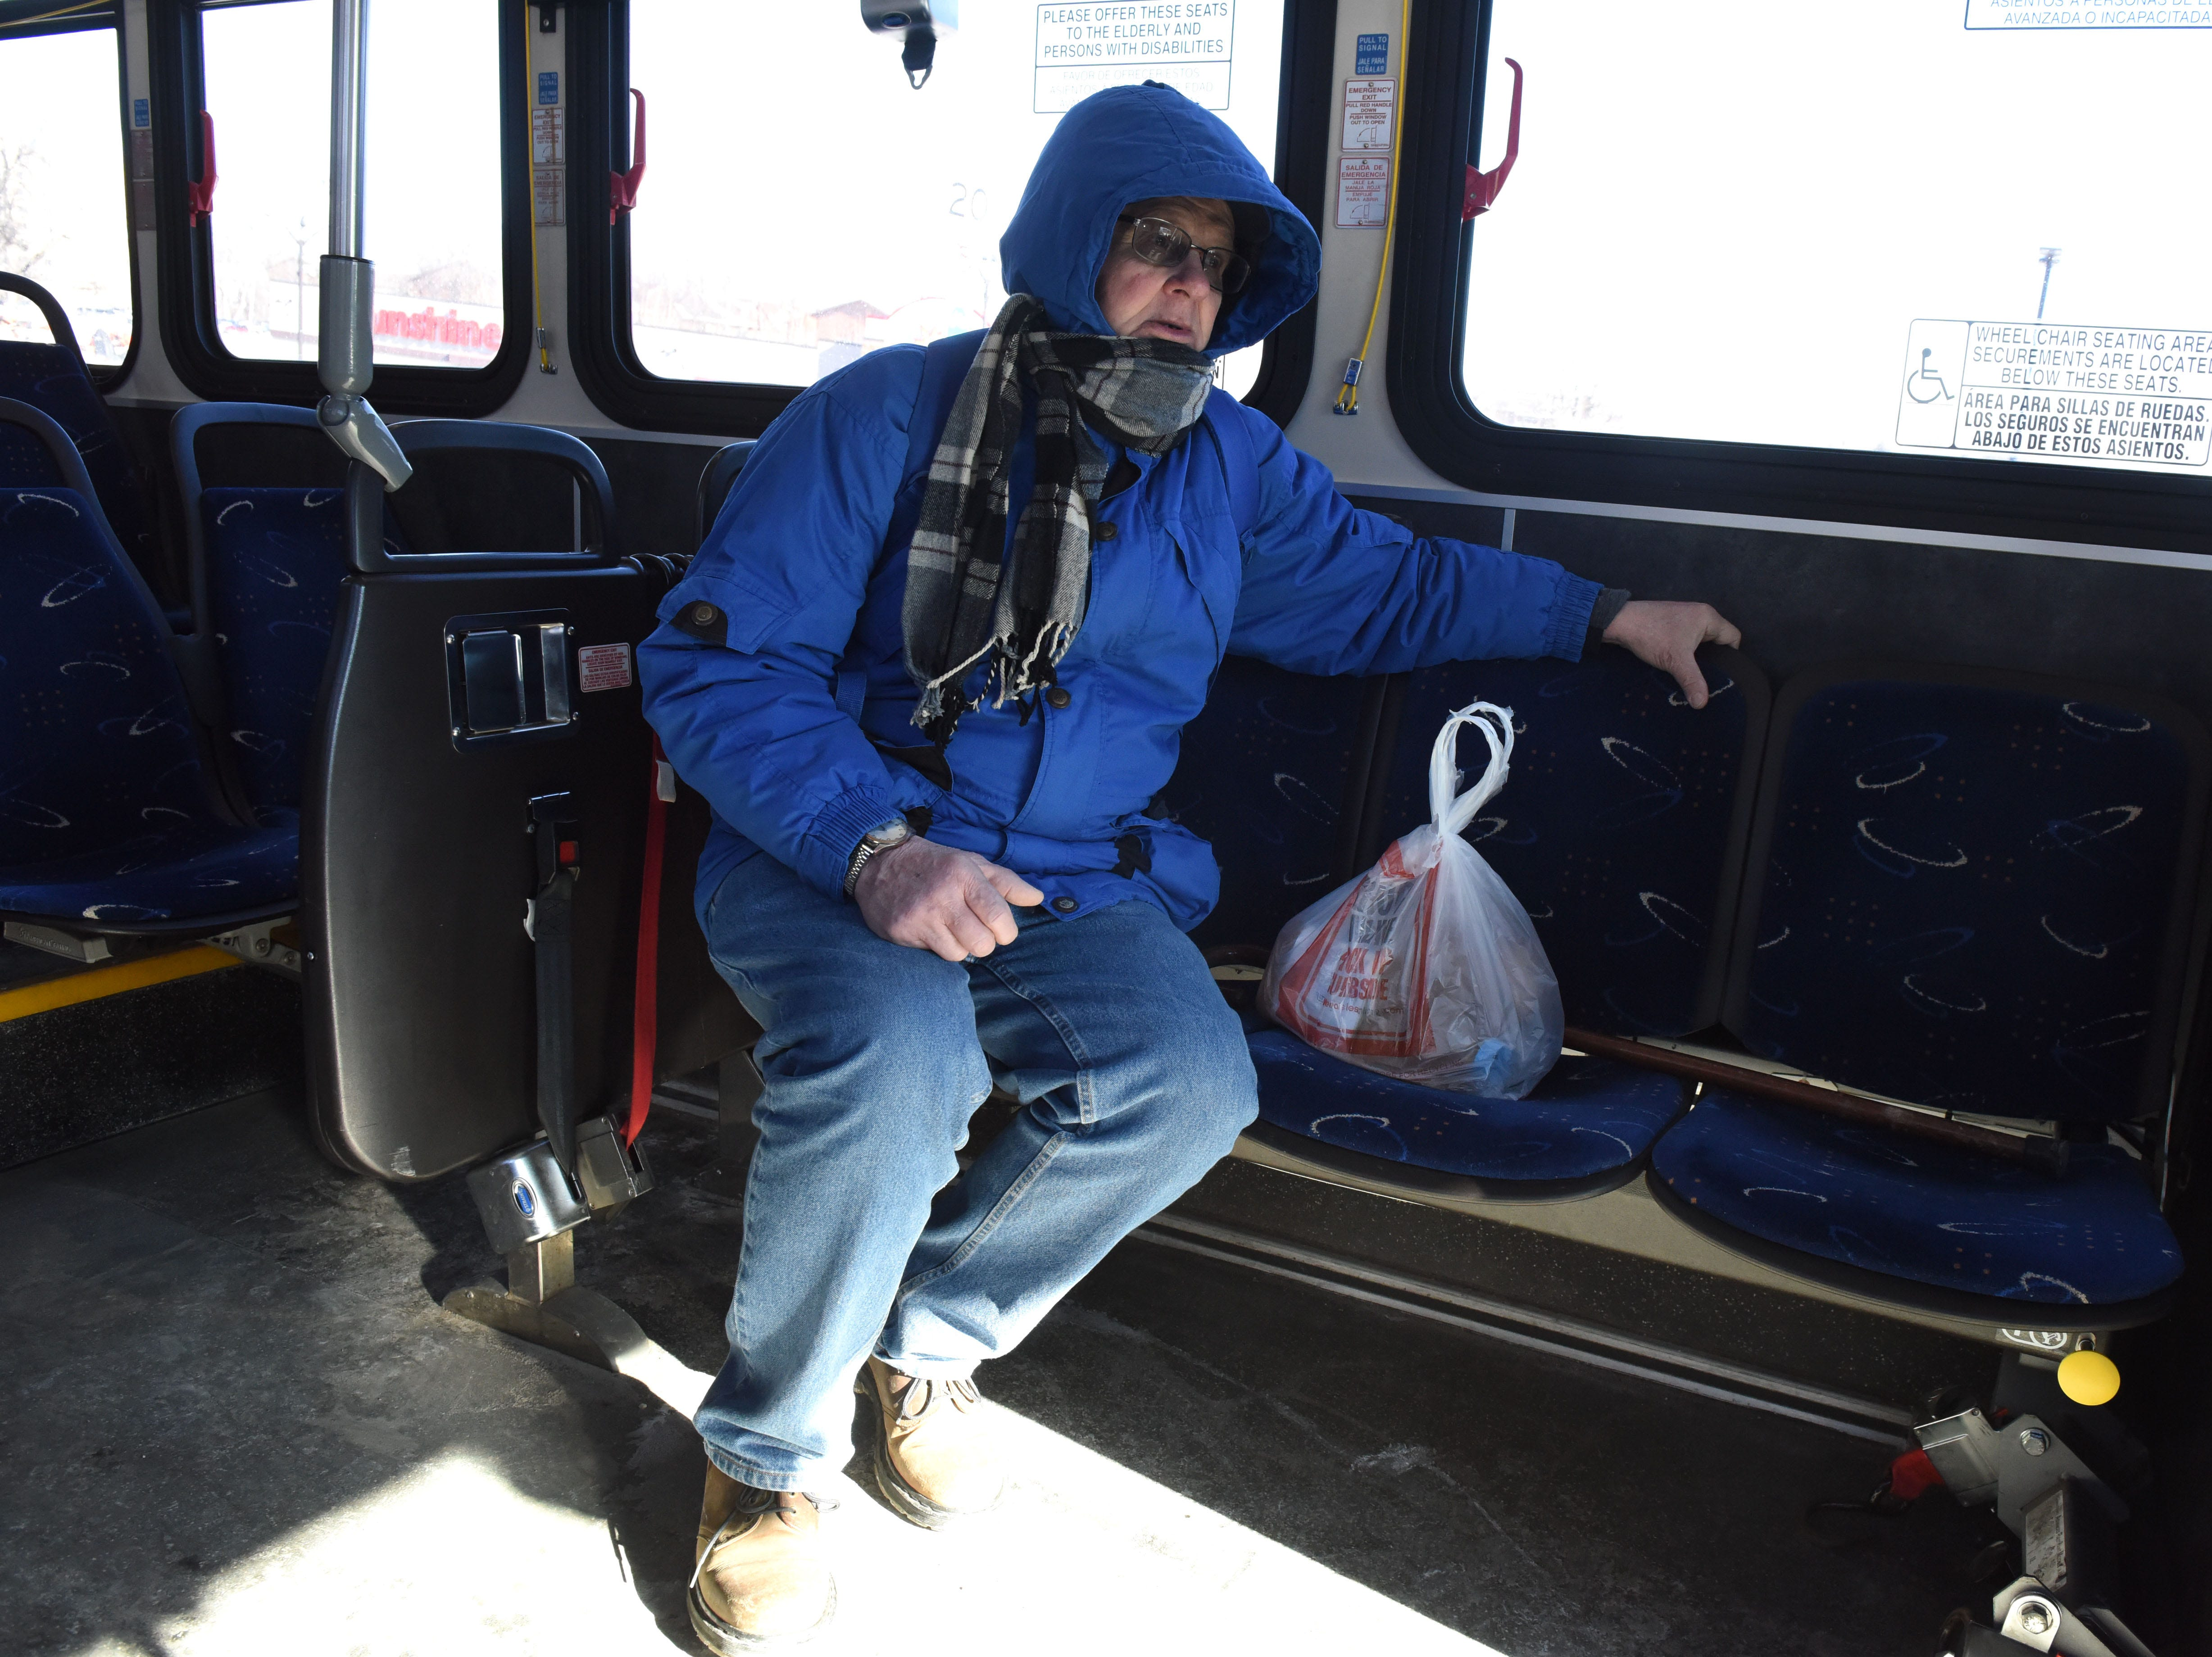 James Coleman rides the bus in Sioux Falls, S.D., Wednesday, Jan. 30, 2019.